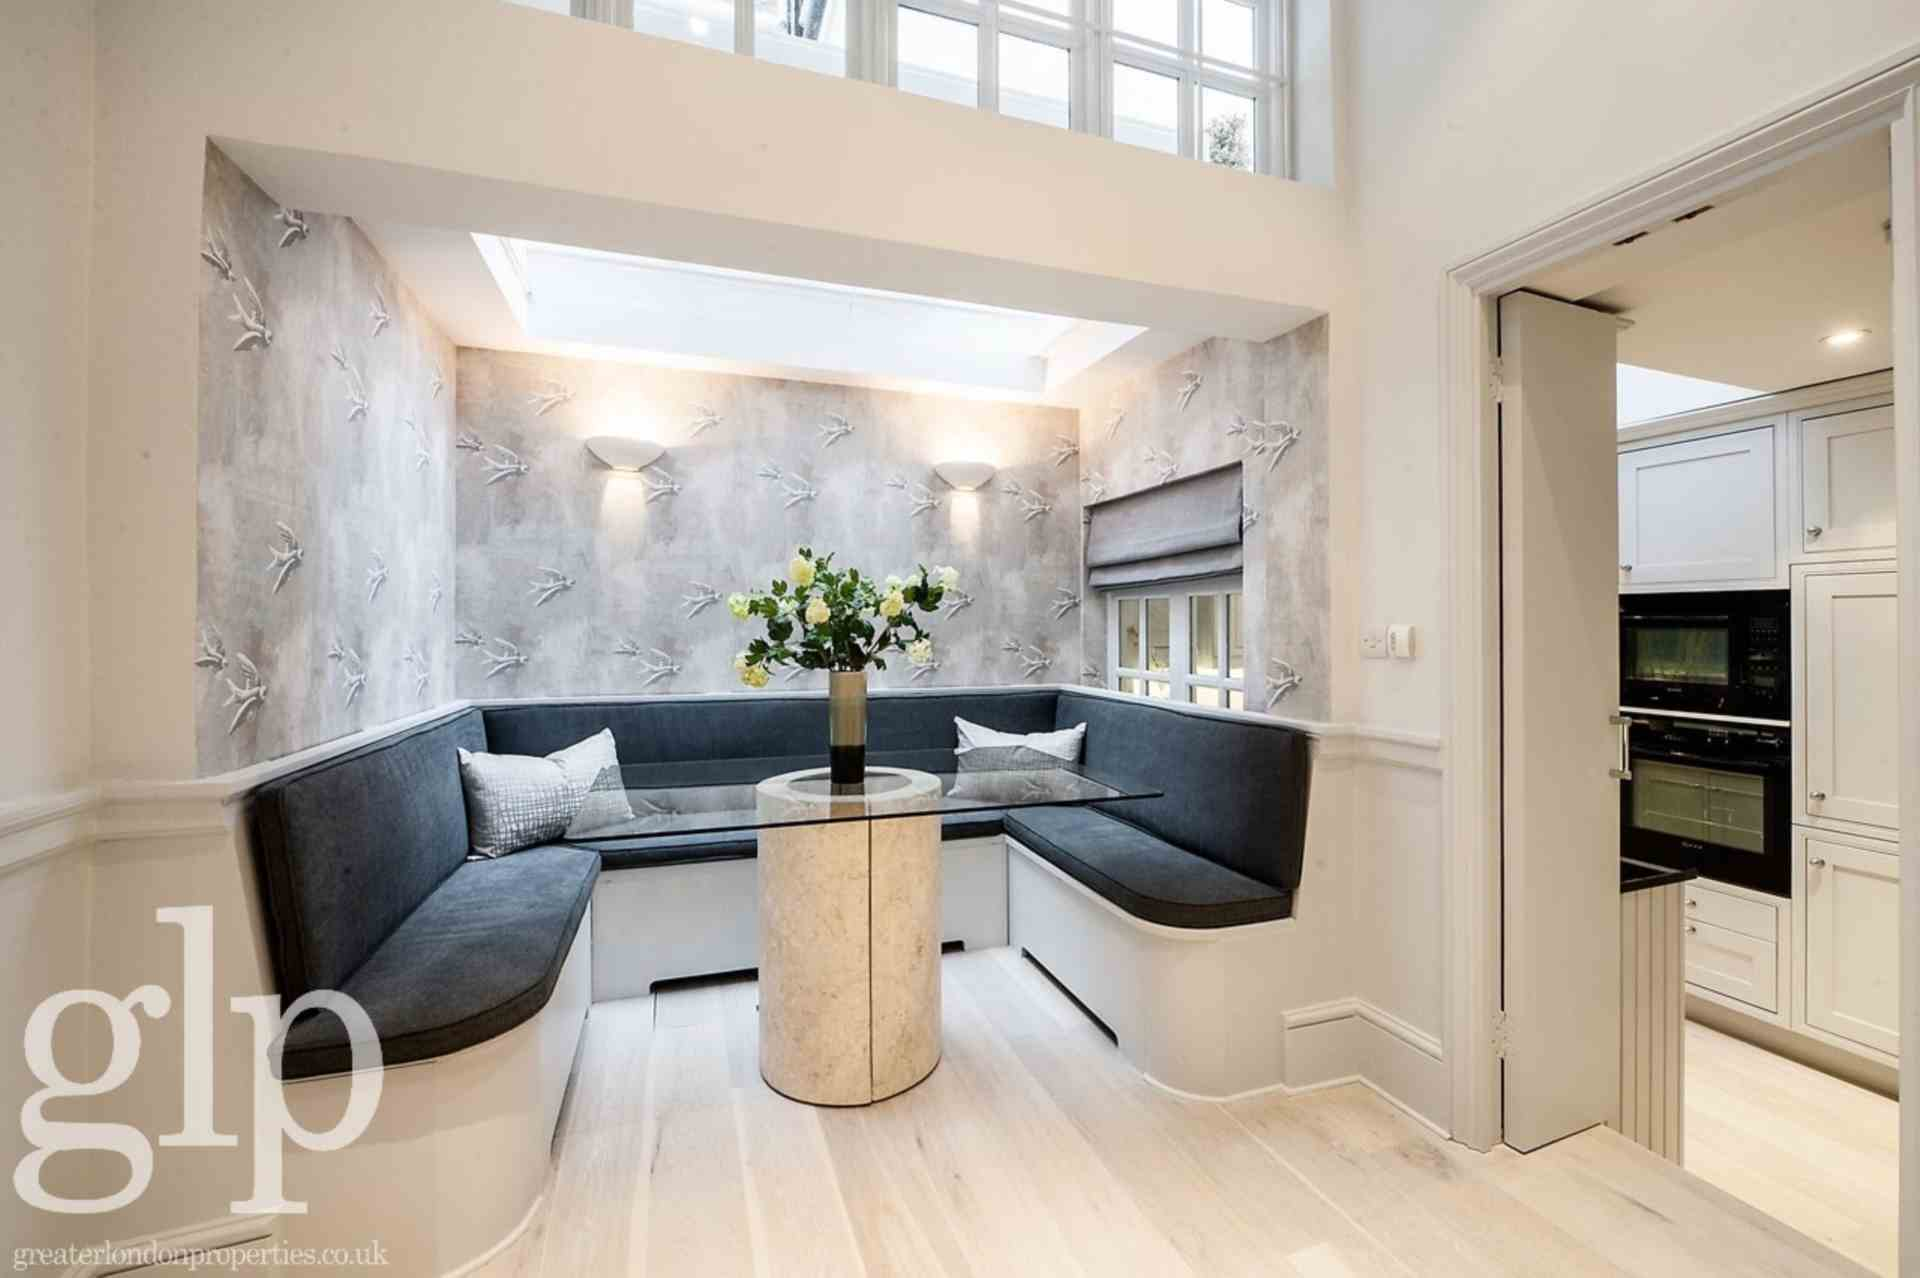 2 Bedroom Town House, Pavillion Road, Knightsbridge